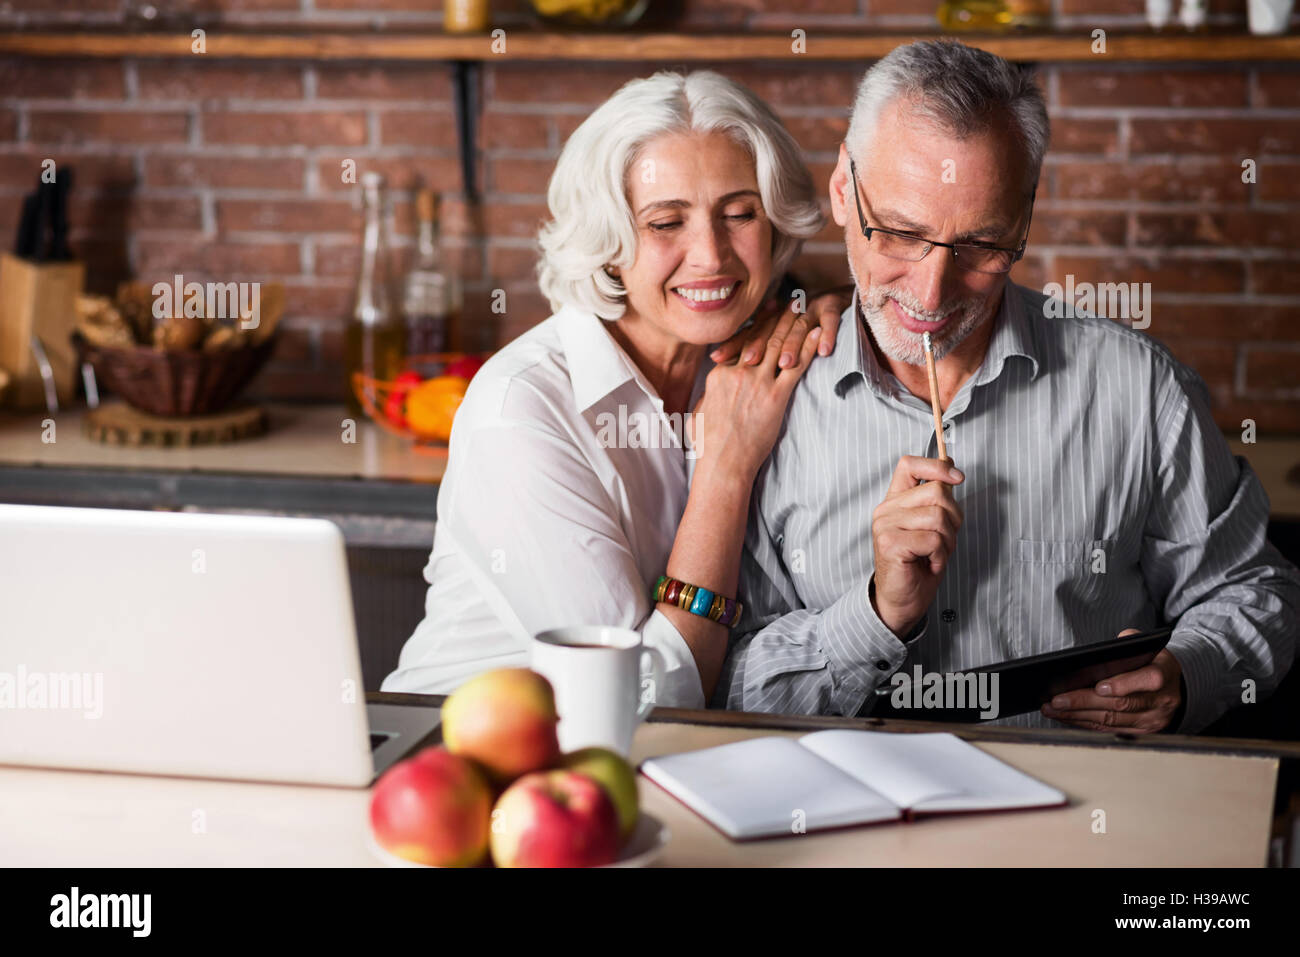 Elderly couple making notes in a kitchen - Stock Image